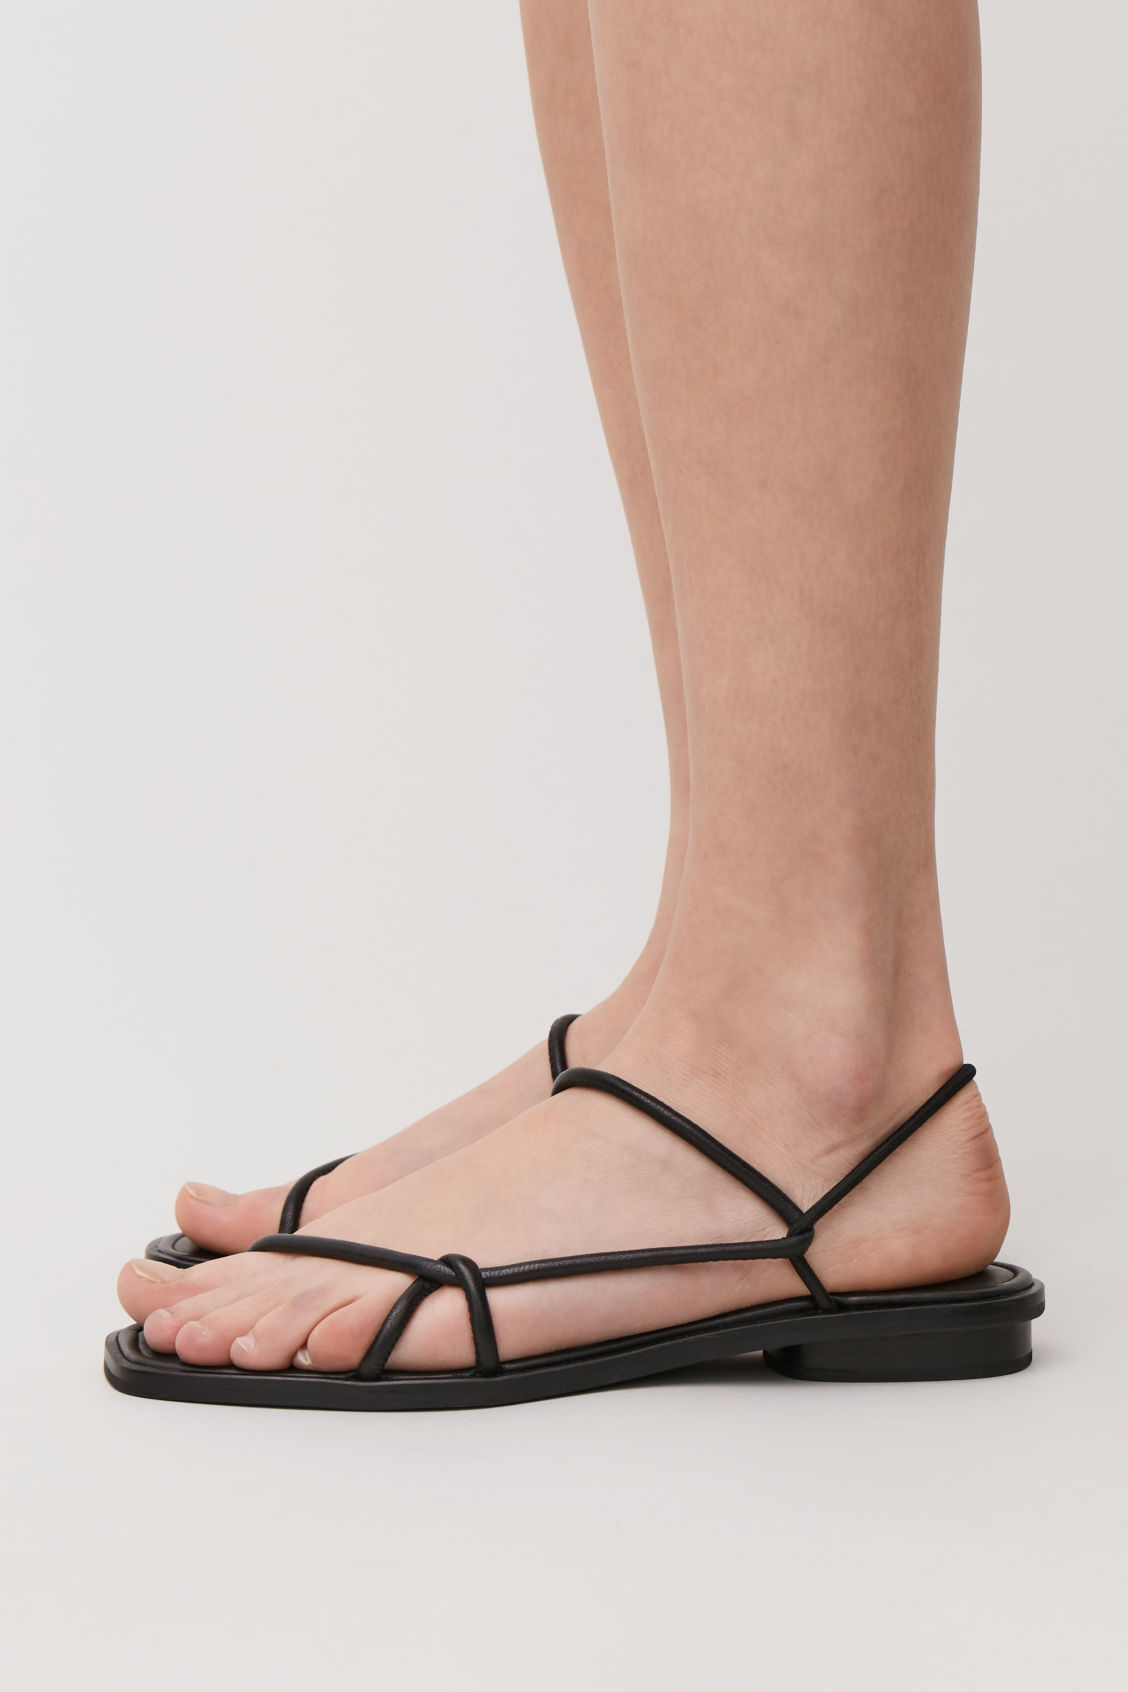 Detailed image of Cos strappy flat sandals in black